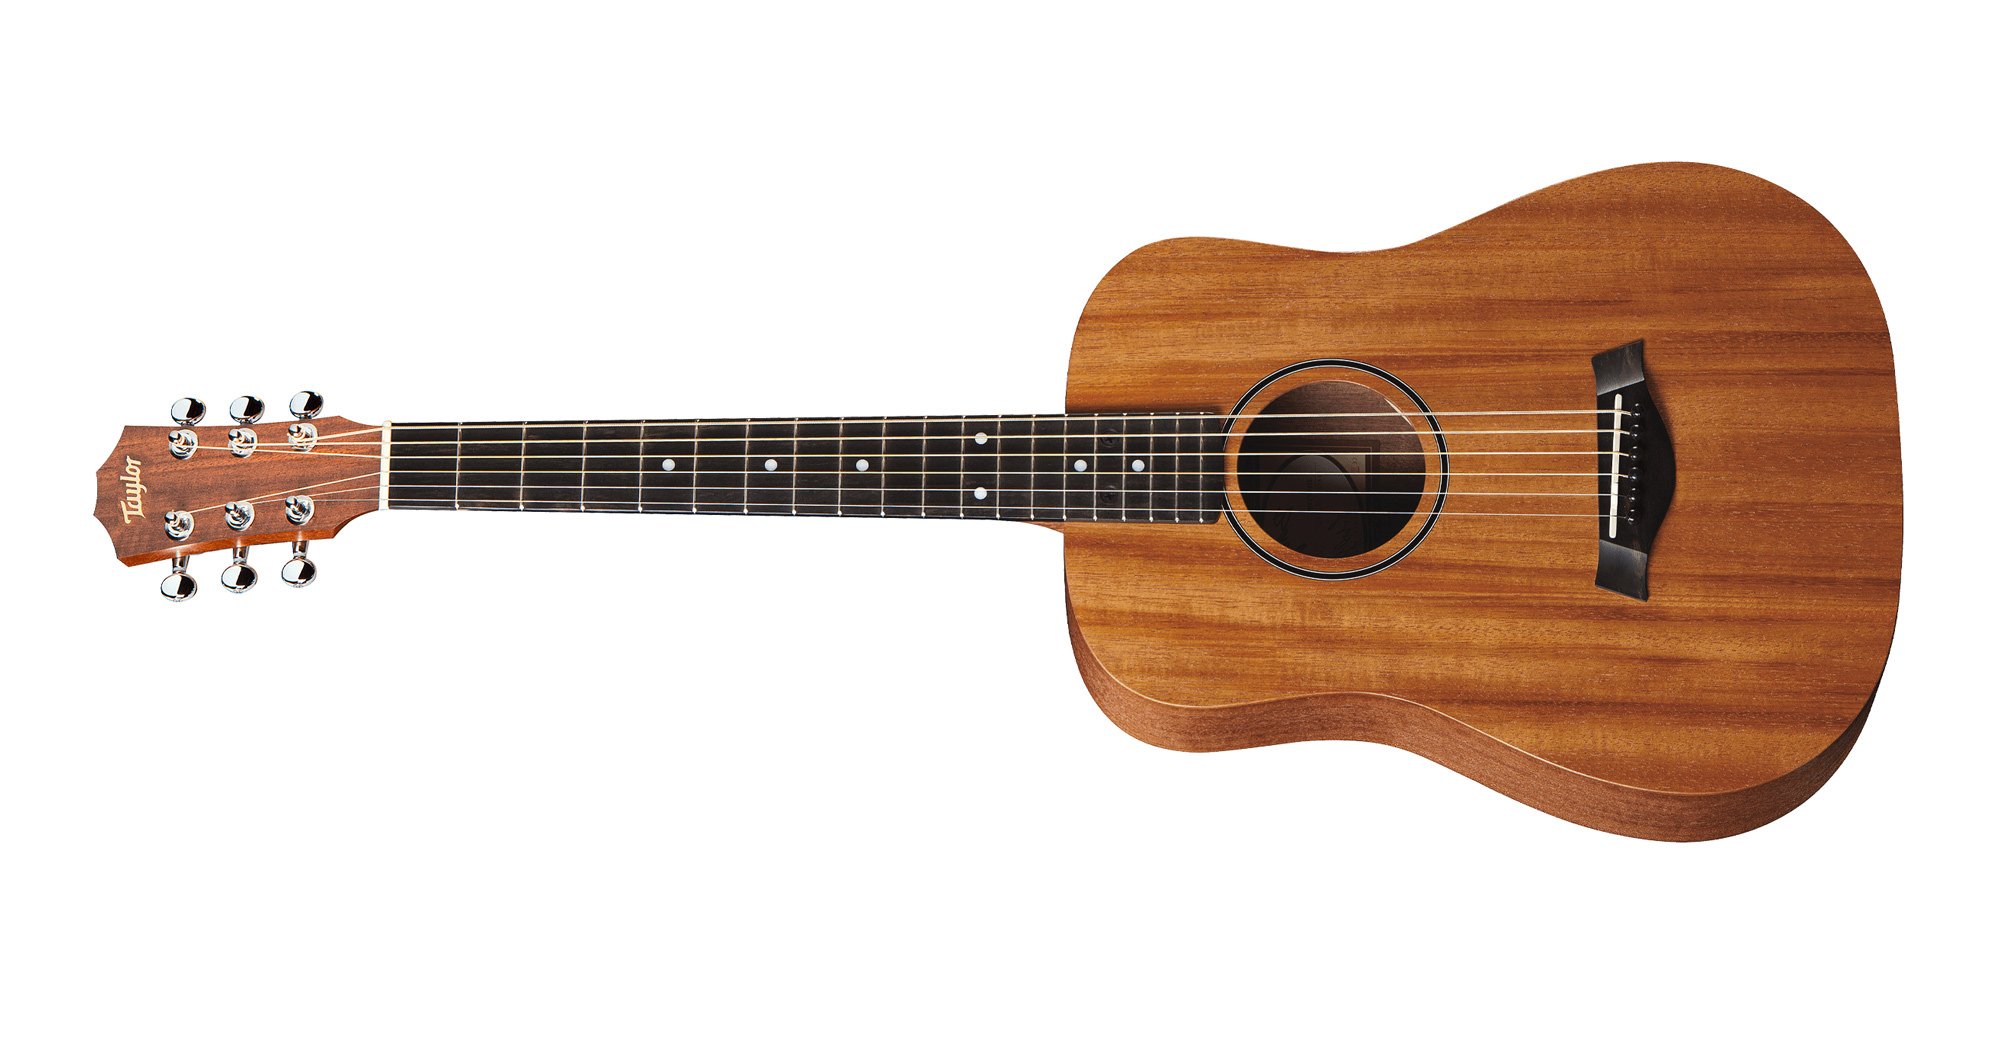 Taylor Bt1 E Buy Sell Online Acoustic Electric Guitars With Cheap Price Lazada Ph